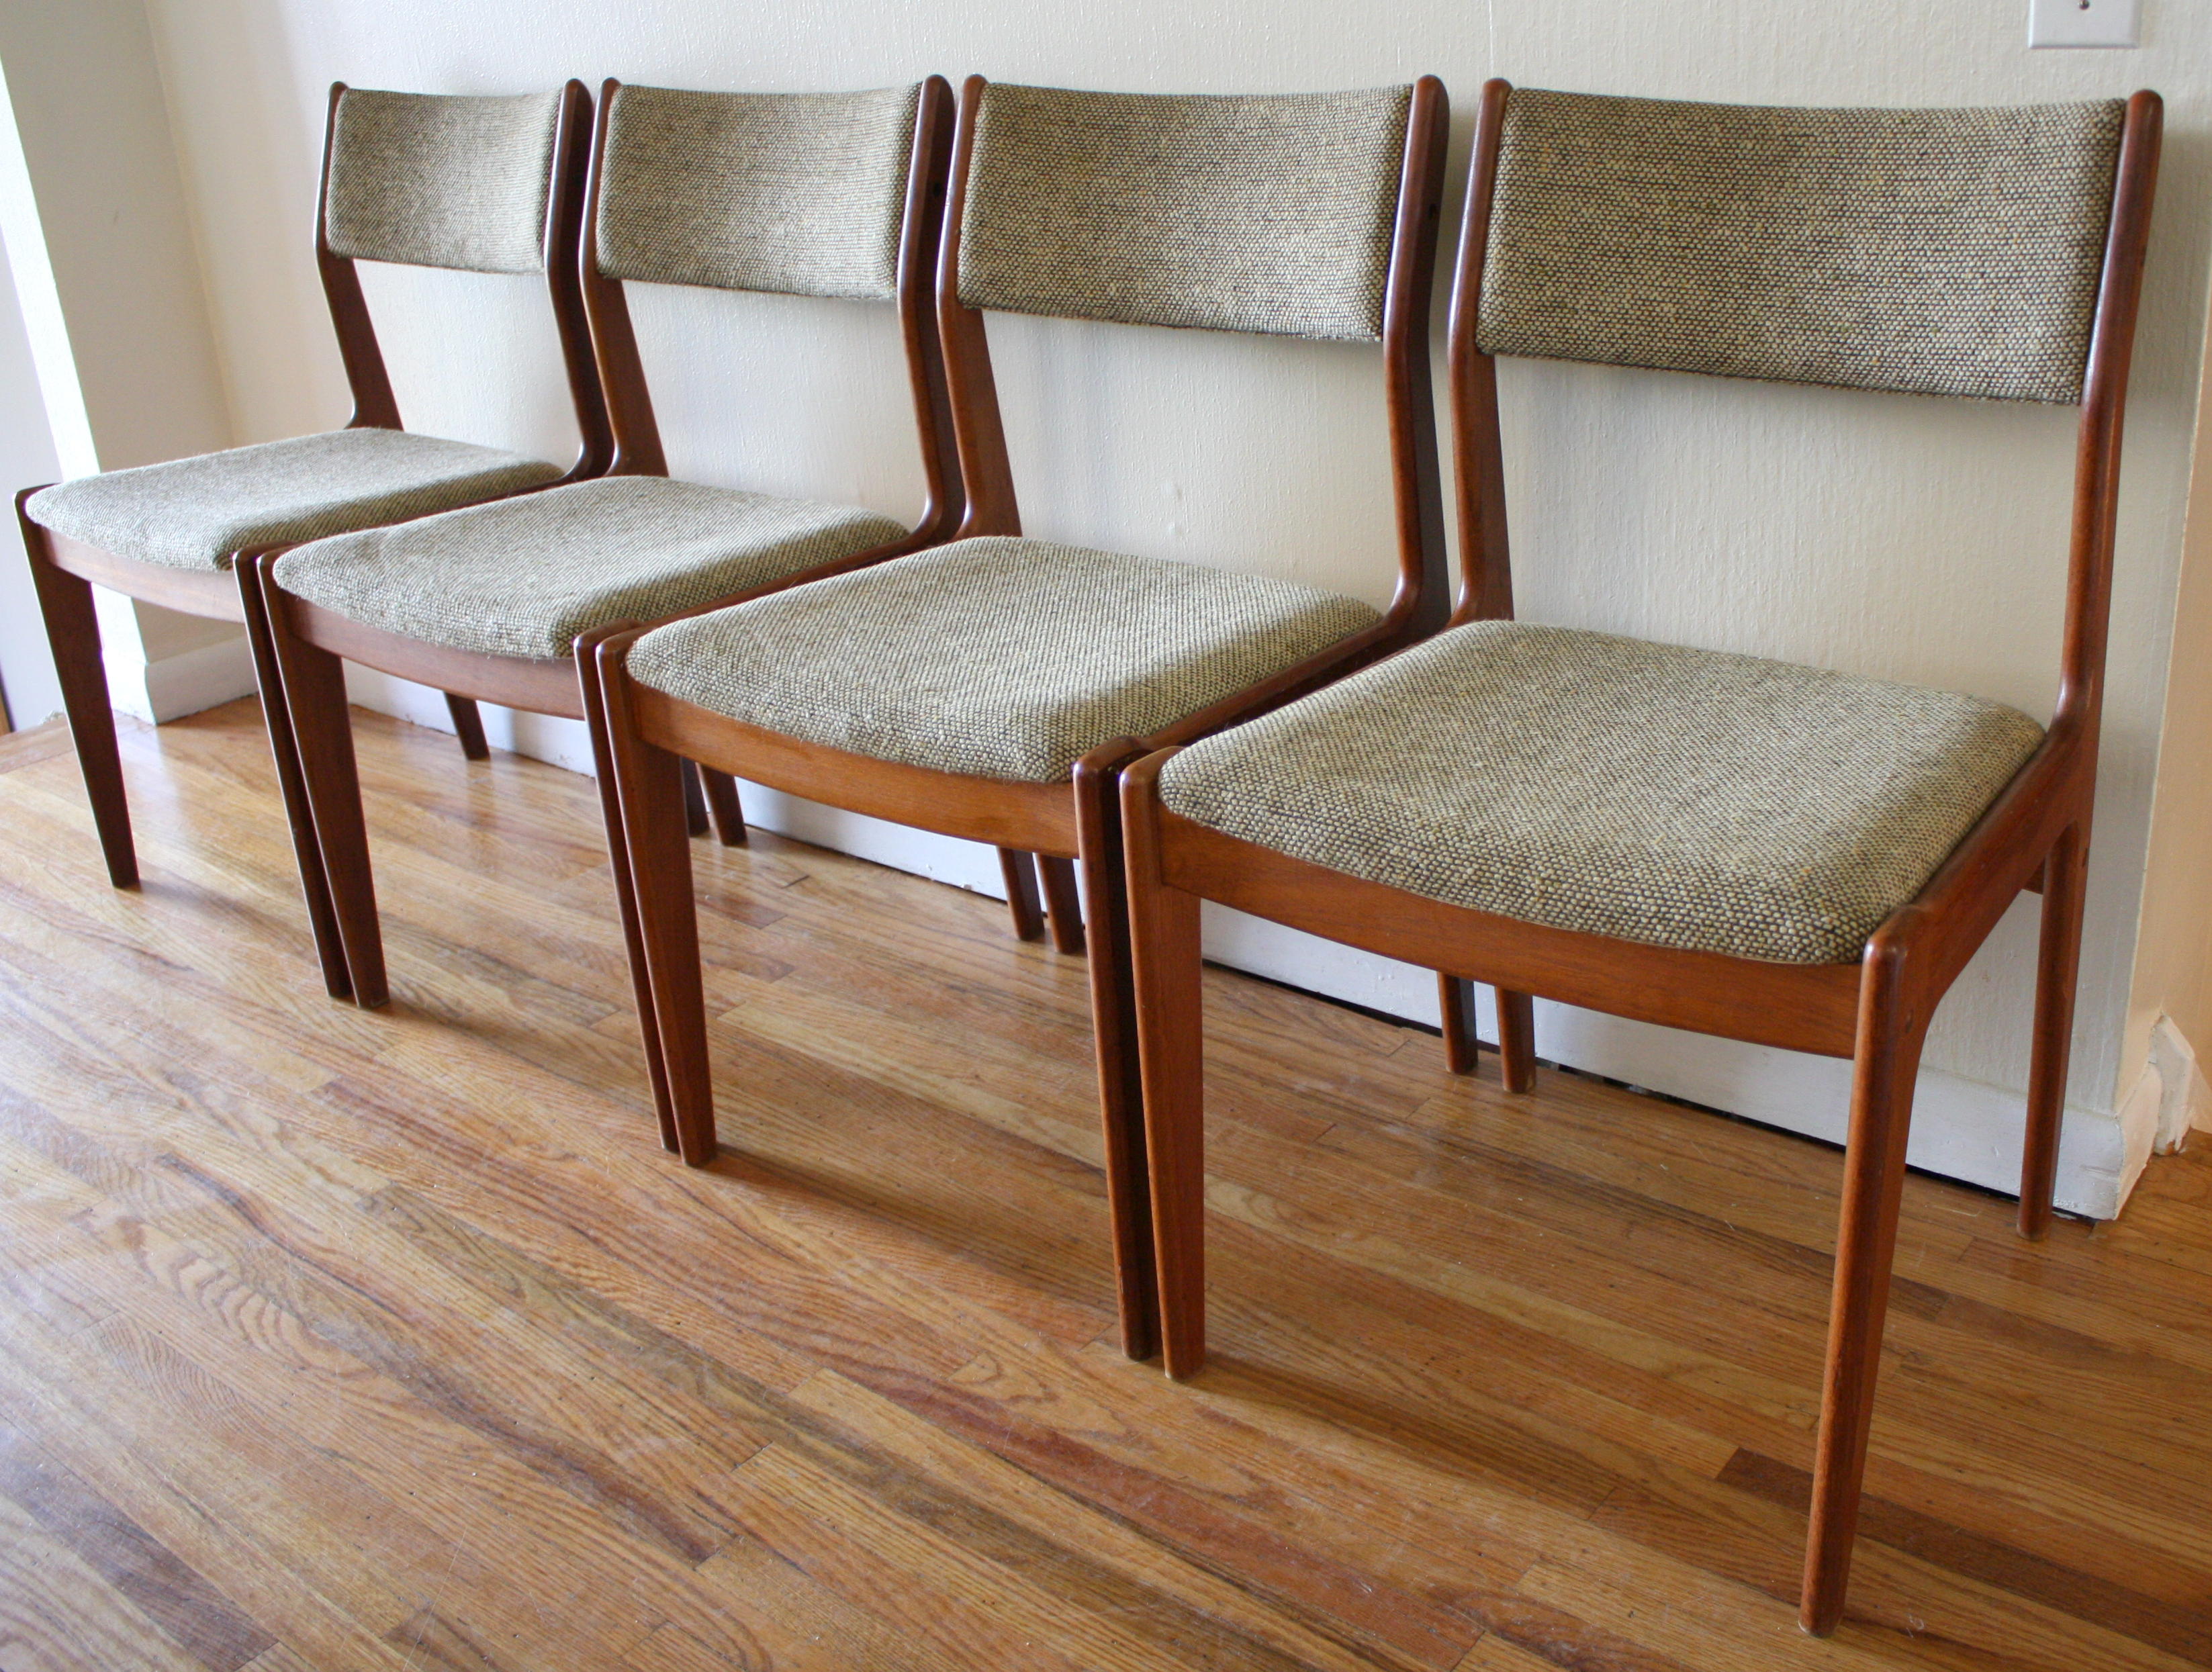 Top Mid Century Modern Dining Chairs 3294 x 2490 · 4642 kB · jpeg